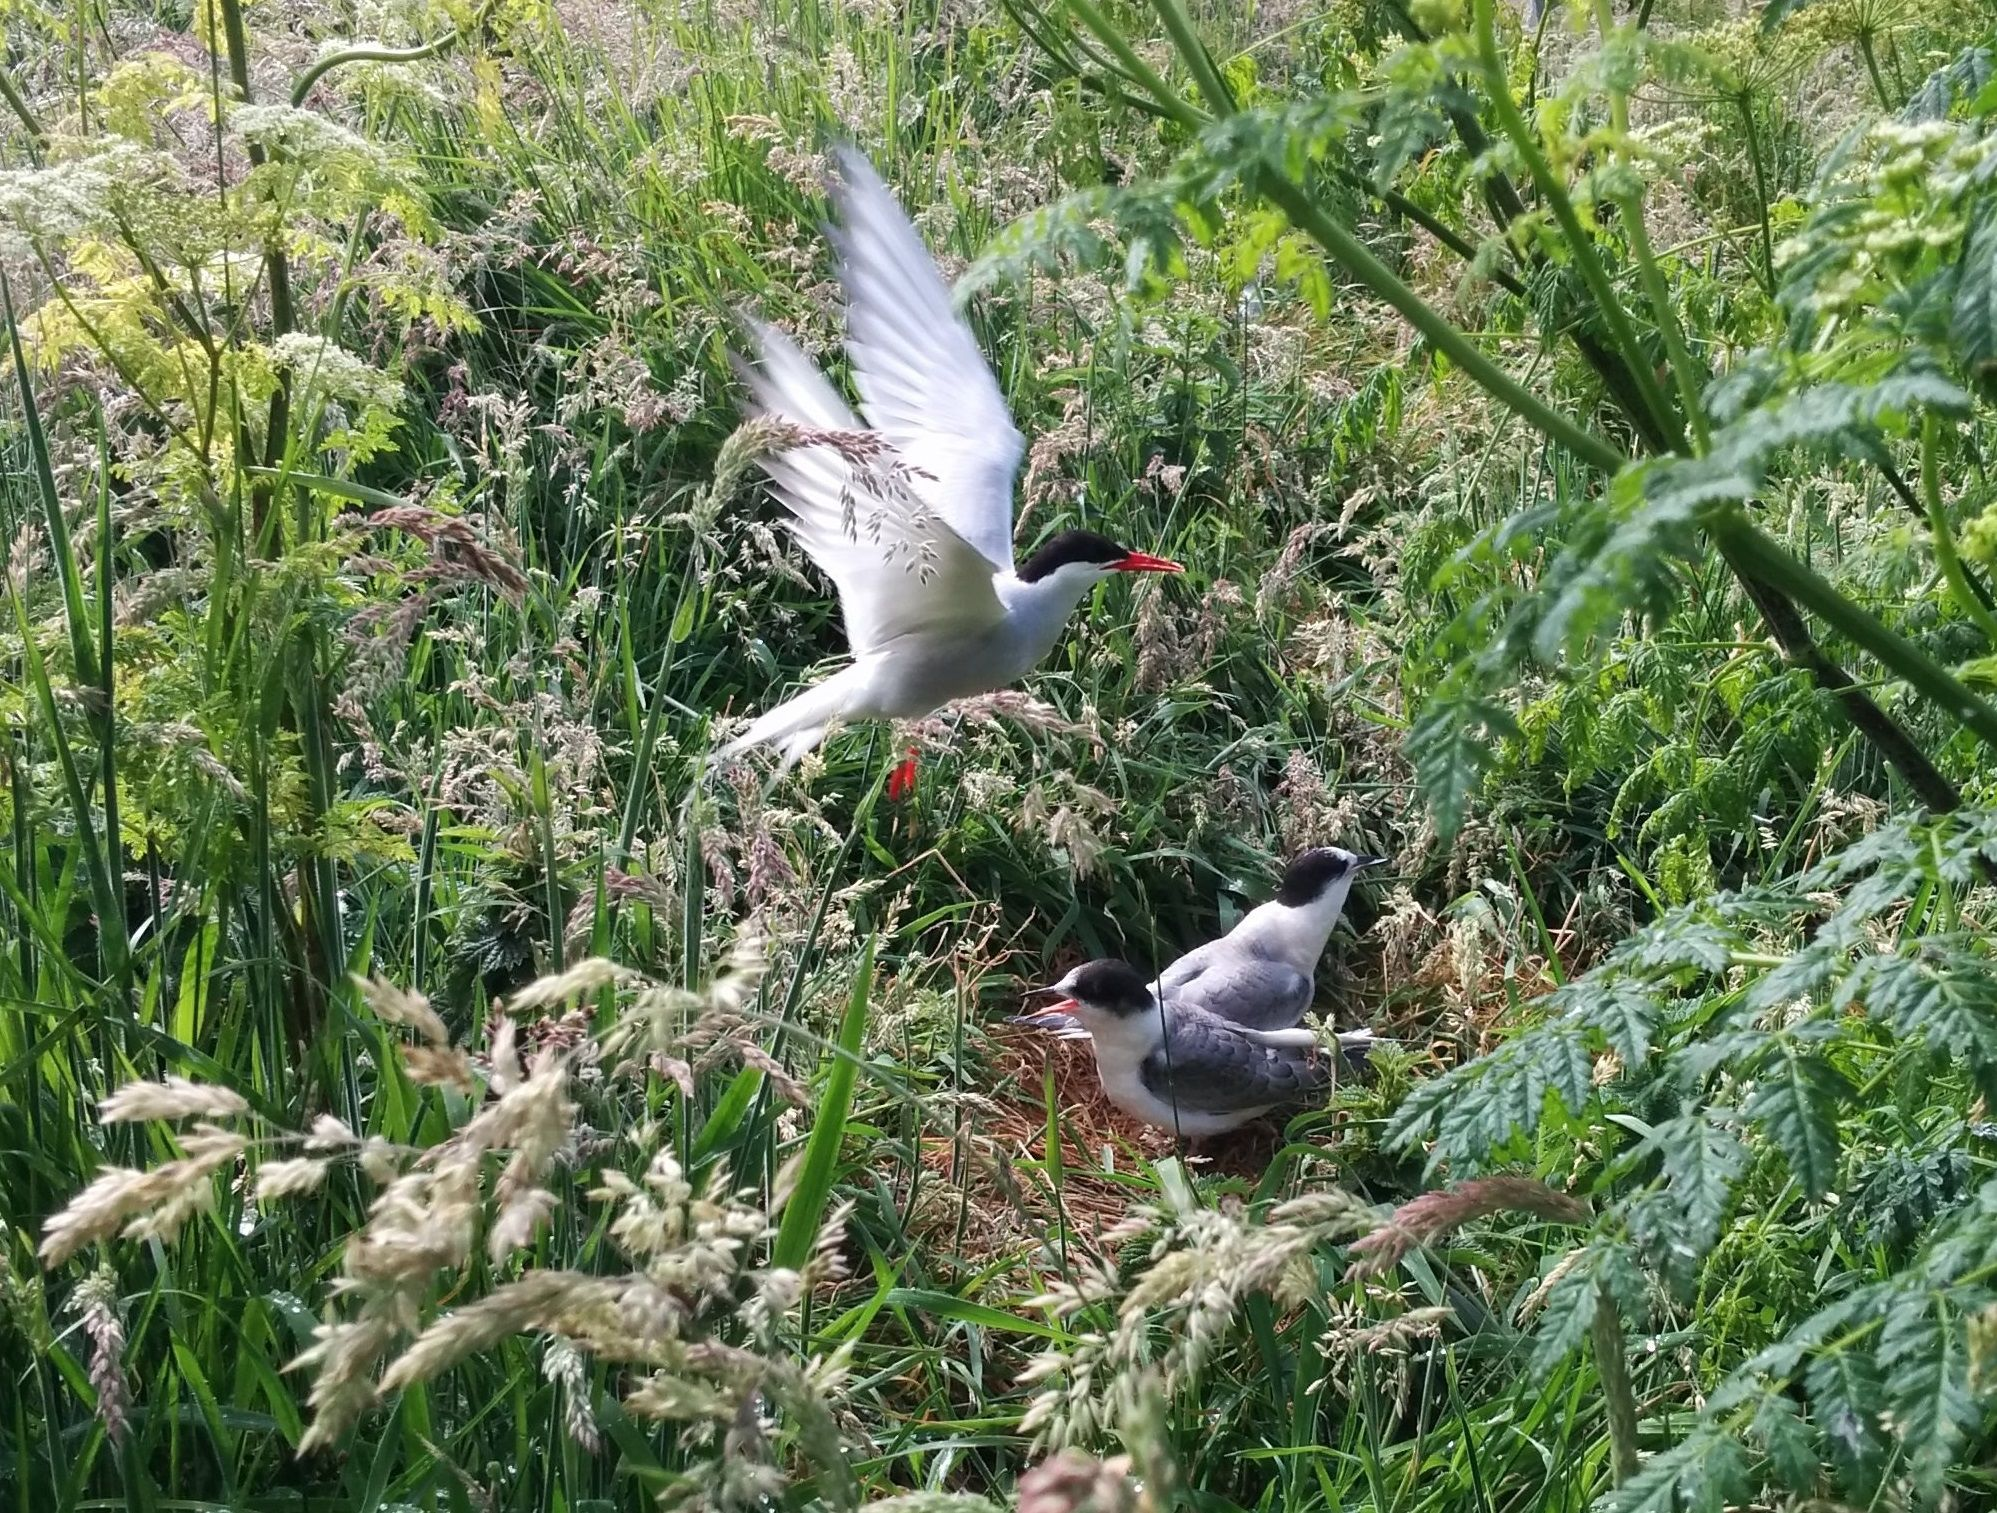 One Good Tern Deserves Another; Saving The Birds One Nest At A Time